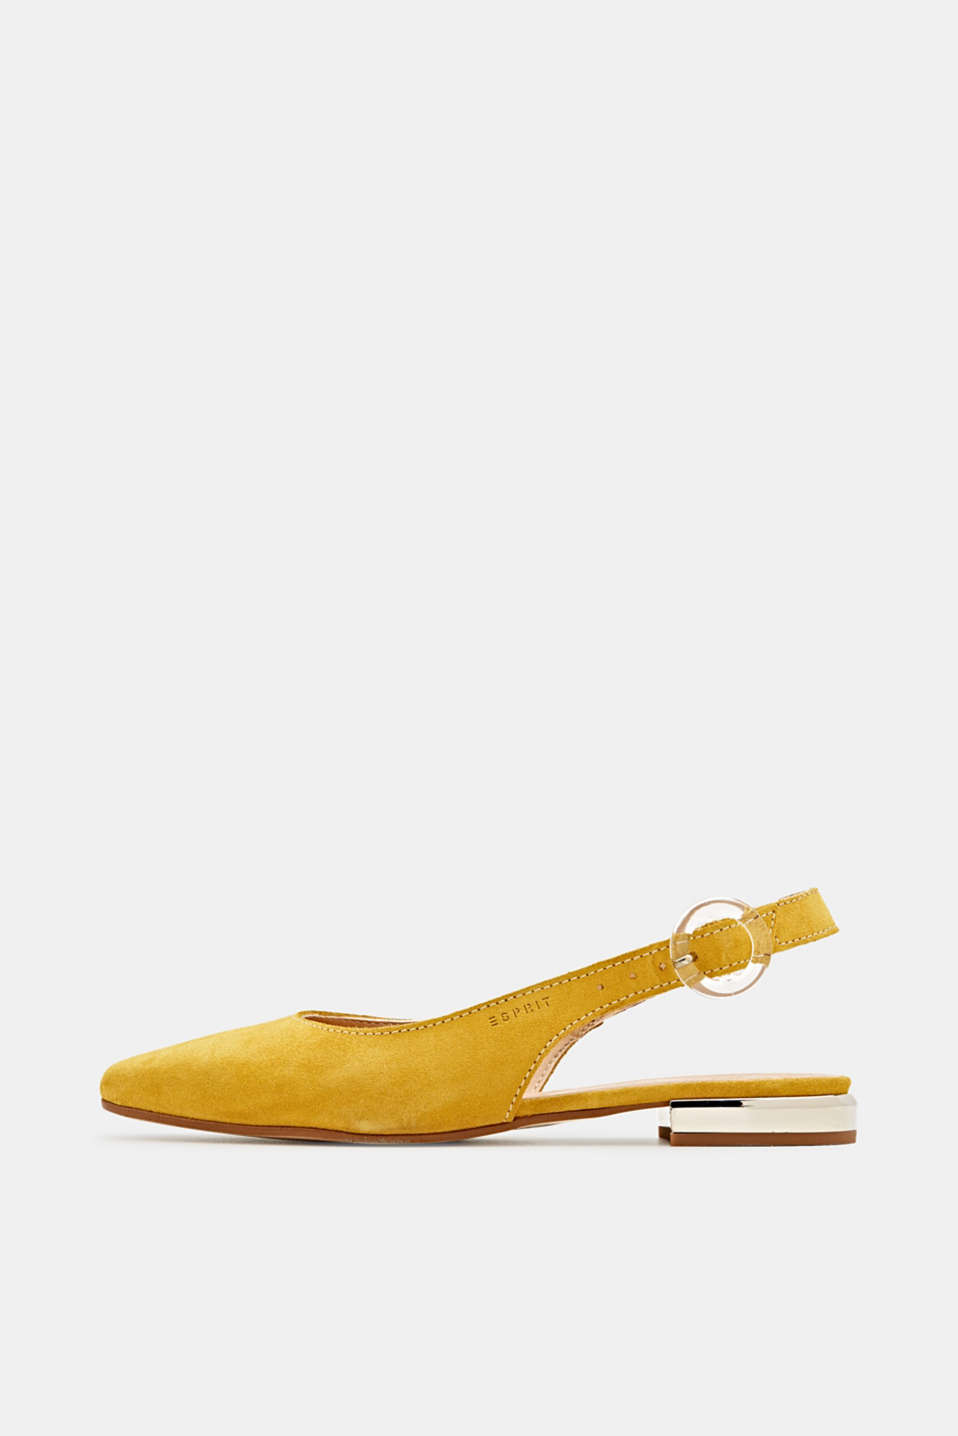 Sling back suede ballerinas, YELLOW, detail image number 0